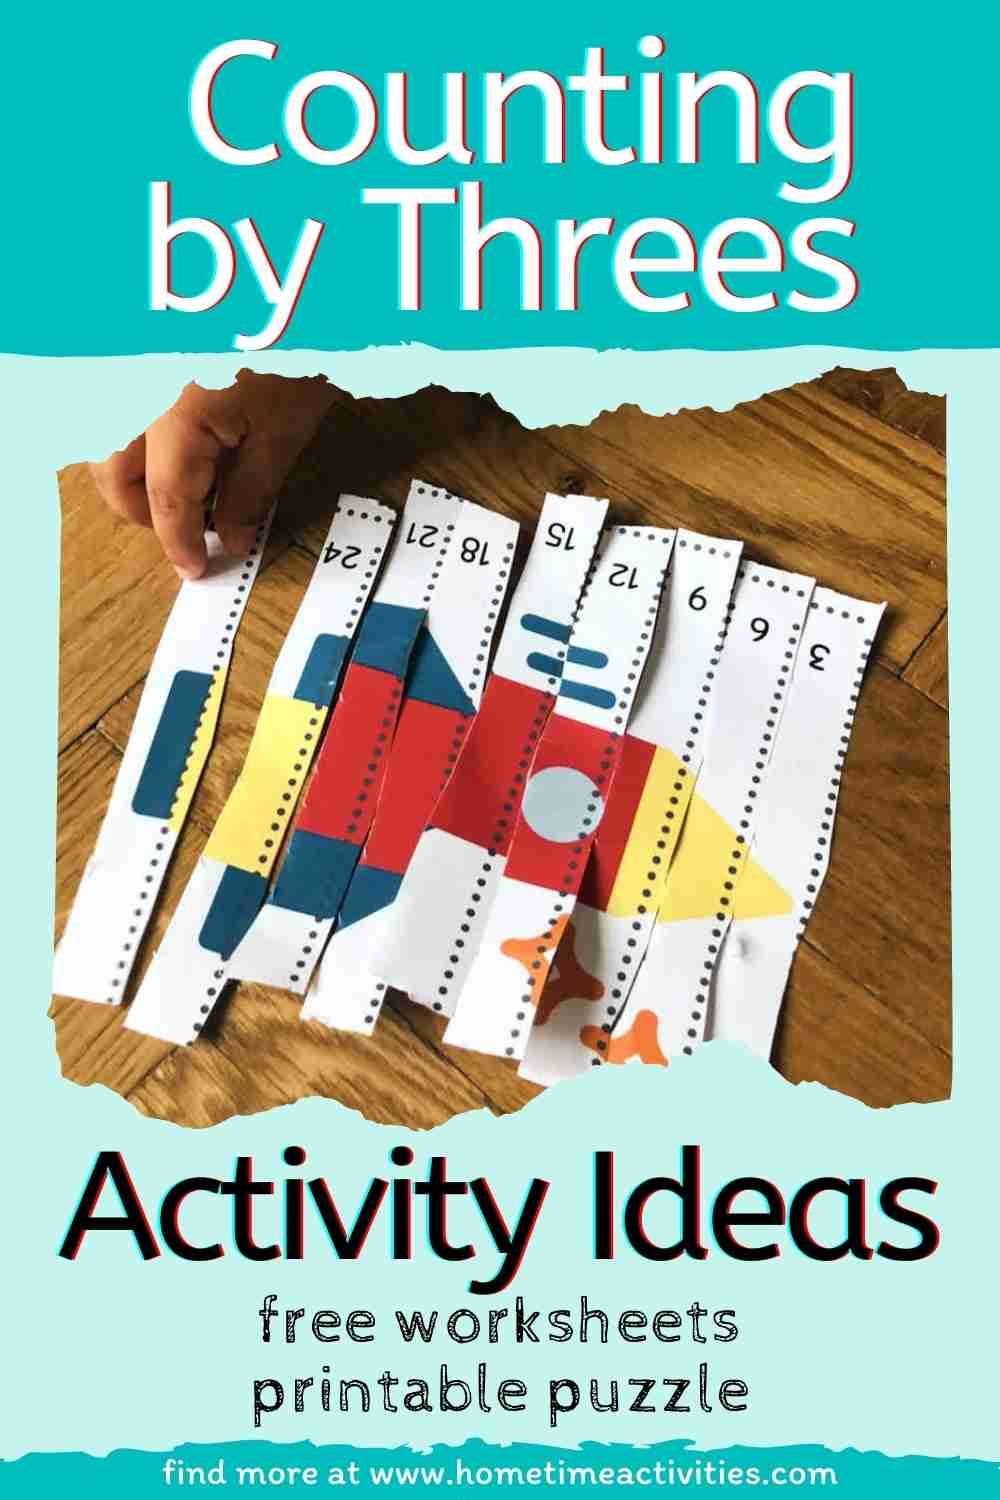 Counting by Threes - Fun activity ideas to help kids learn - image with text